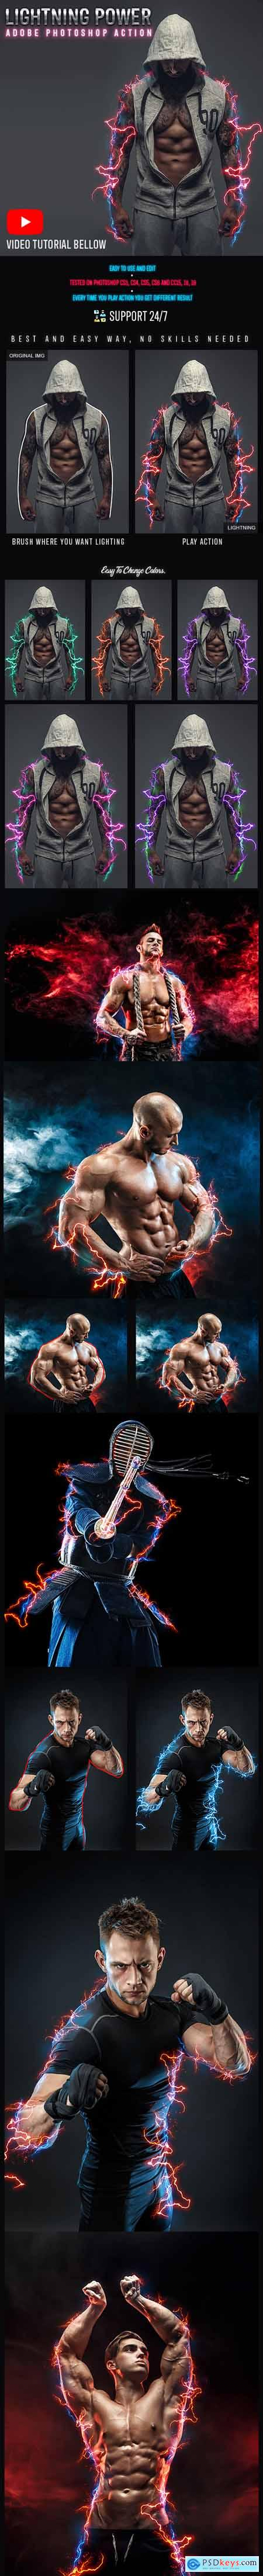 Lightning Power Photoshop Action 24774308